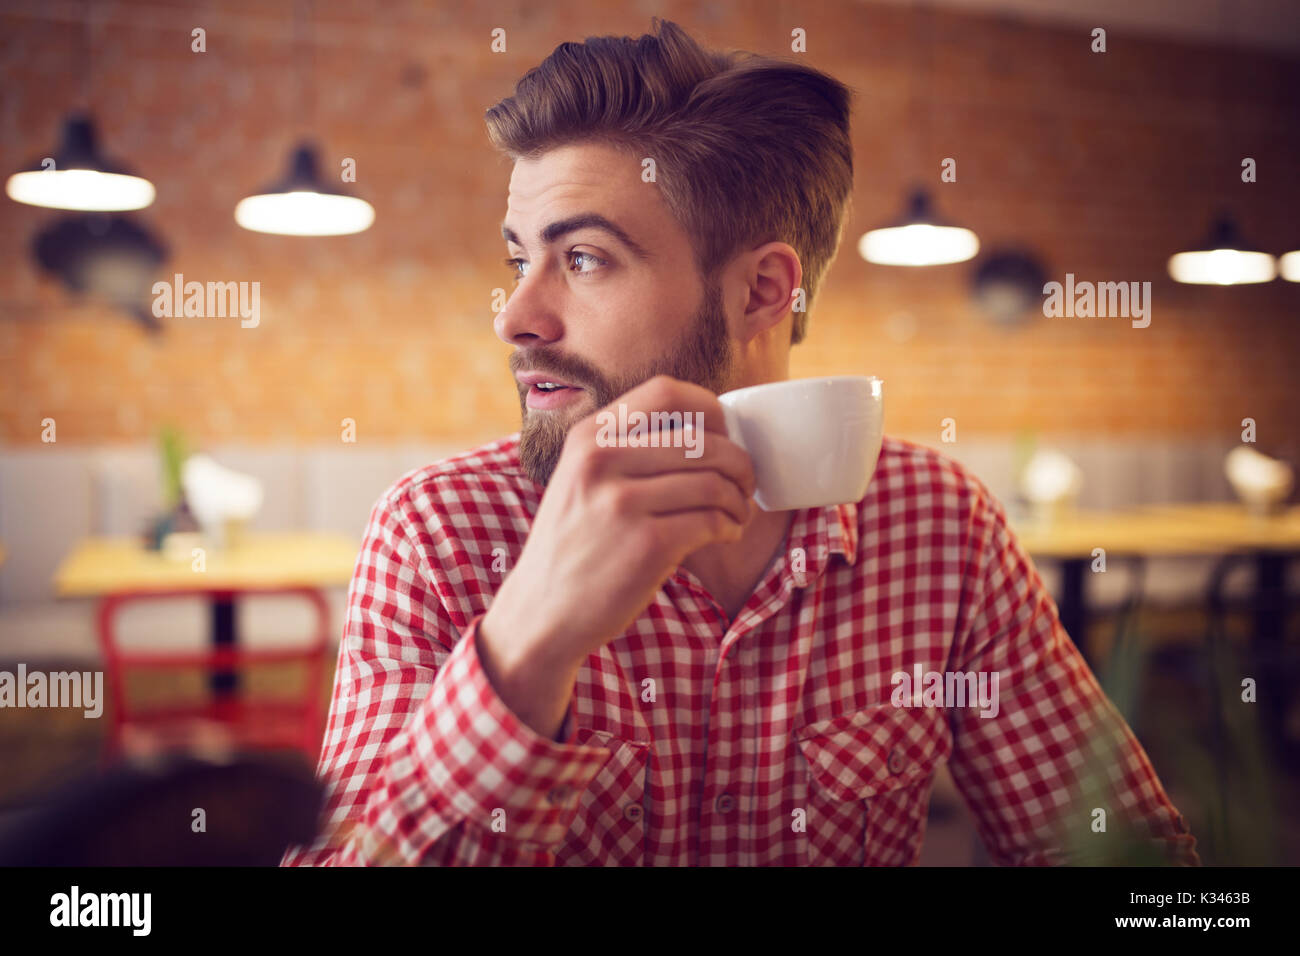 A photo of young man in checked shirt sitting at the cafe with a cup of coffee in his hand. - Stock Image